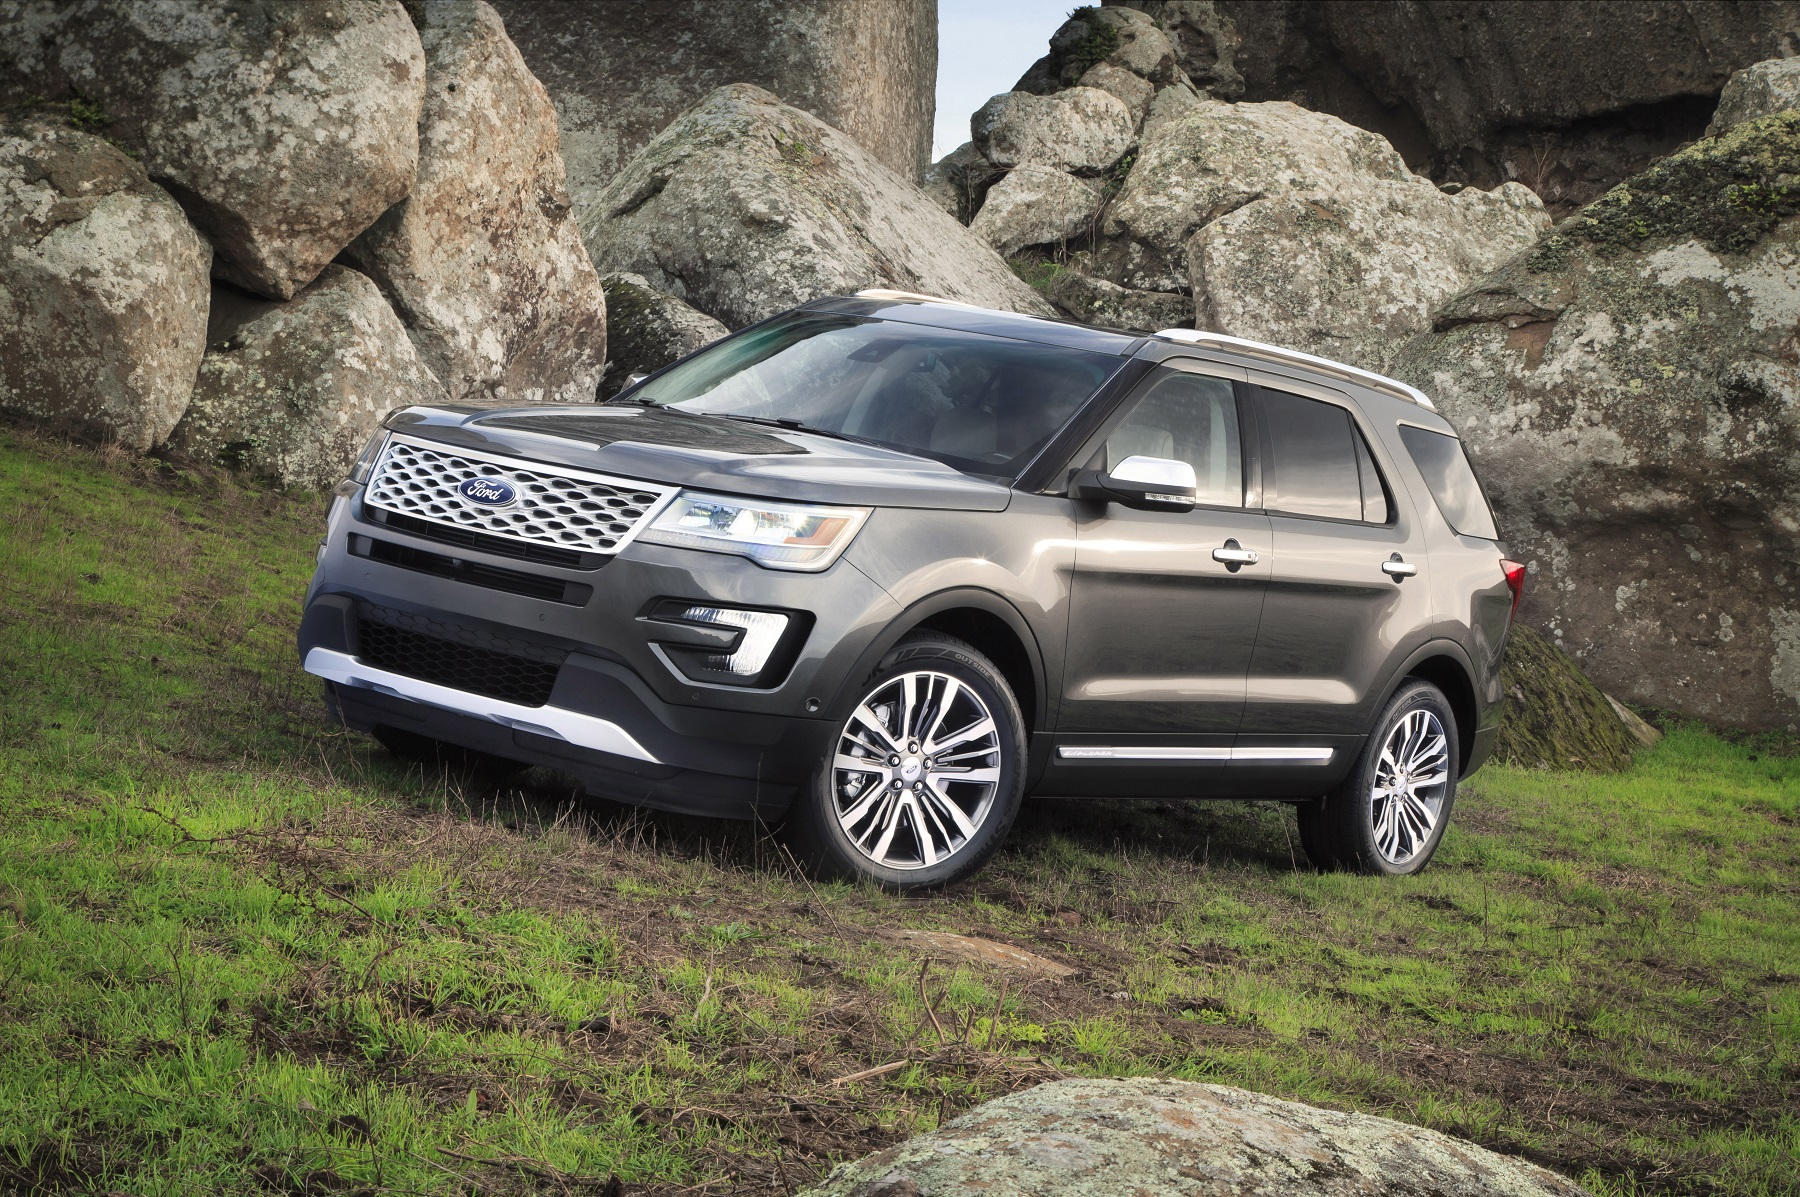 Manufacturer photo: The 2016 Ford Explorer Platinum is a luxury seven-passenger crossover sport utility vehicle designed to deliver the most premium, highest-quality interior ever offered on a Ford vehicle